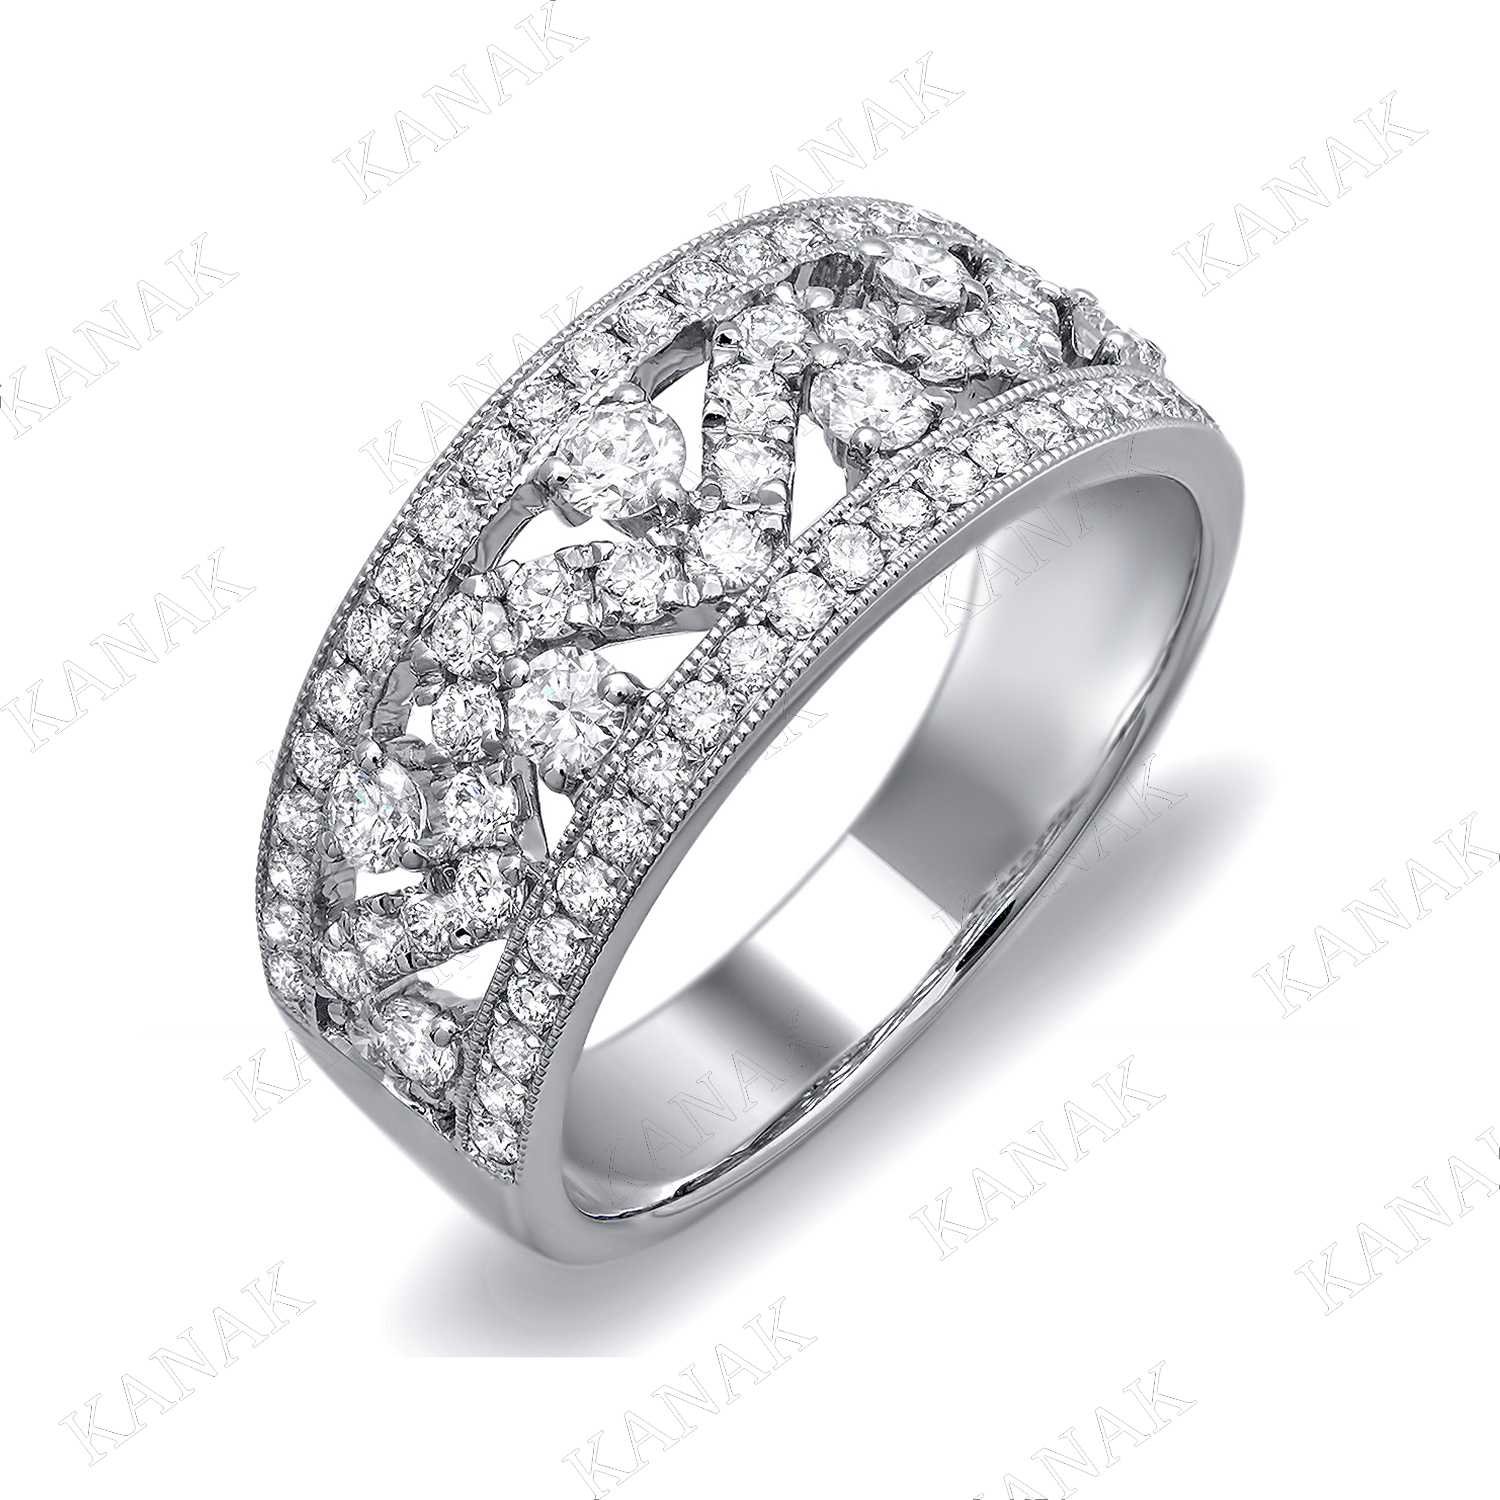 0.85 Ct Round Cut Natural Diamond Zig Zag Wedding Band Ring Throughout 2020 Diamond Zig Zag Anniversary Rings In White Gold (Gallery 11 of 25)